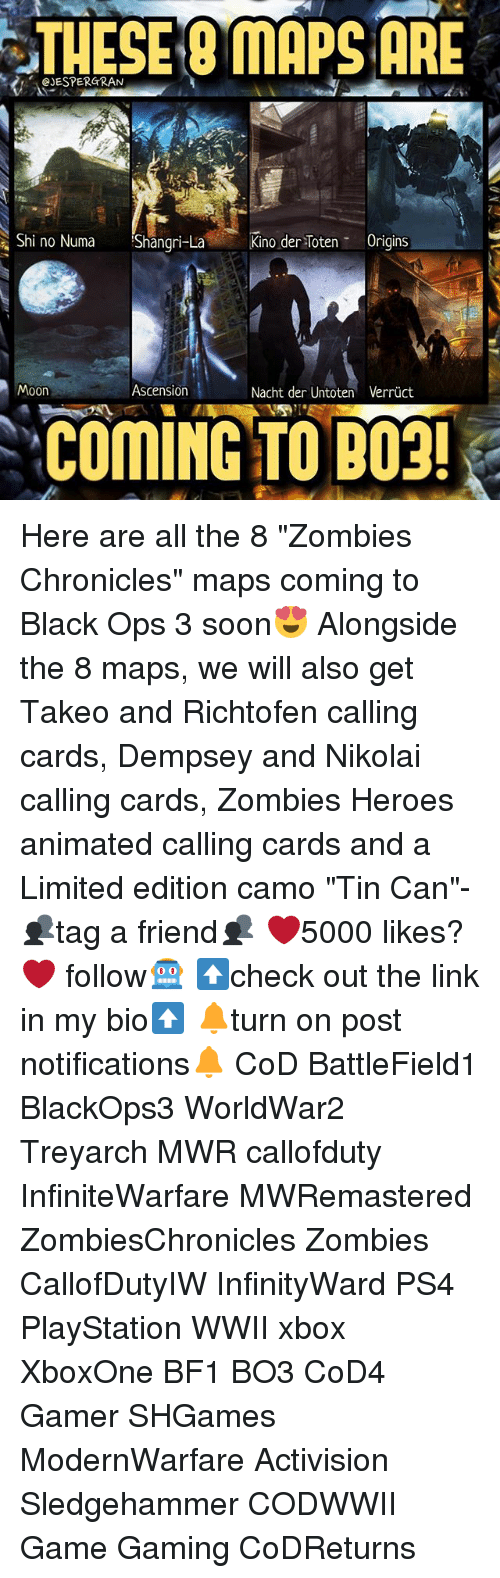 "Memes, PlayStation, and Ps4: CJESPERGRAN  OMAPSARE  Shi no Numa Shangri-La  Kino der ten T Origins  Moon  Ascension  Nacht der Untoten Verruct  COMING TO P09! Here are all the 8 ""Zombies Chronicles"" maps coming to Black Ops 3 soon😍 Alongside the 8 maps, we will also get Takeo and Richtofen calling cards, Dempsey and Nikolai calling cards, Zombies Heroes animated calling cards and a Limited edition camo ""Tin Can""- 👥tag a friend👥 ❤️5000 likes?❤️ follow🤖 ⬆️check out the link in my bio⬆️ 🔔turn on post notifications🔔 CoD BattleField1 BlackOps3 WorldWar2 Treyarch MWR callofduty InfiniteWarfare MWRemastered ZombiesChronicles Zombies CallofDutyIW InfinityWard PS4 PlayStation WWII xbox XboxOne BF1 BO3 CoD4 Gamer SHGames ModernWarfare Activision Sledgehammer CODWWII Game Gaming CoDReturns"